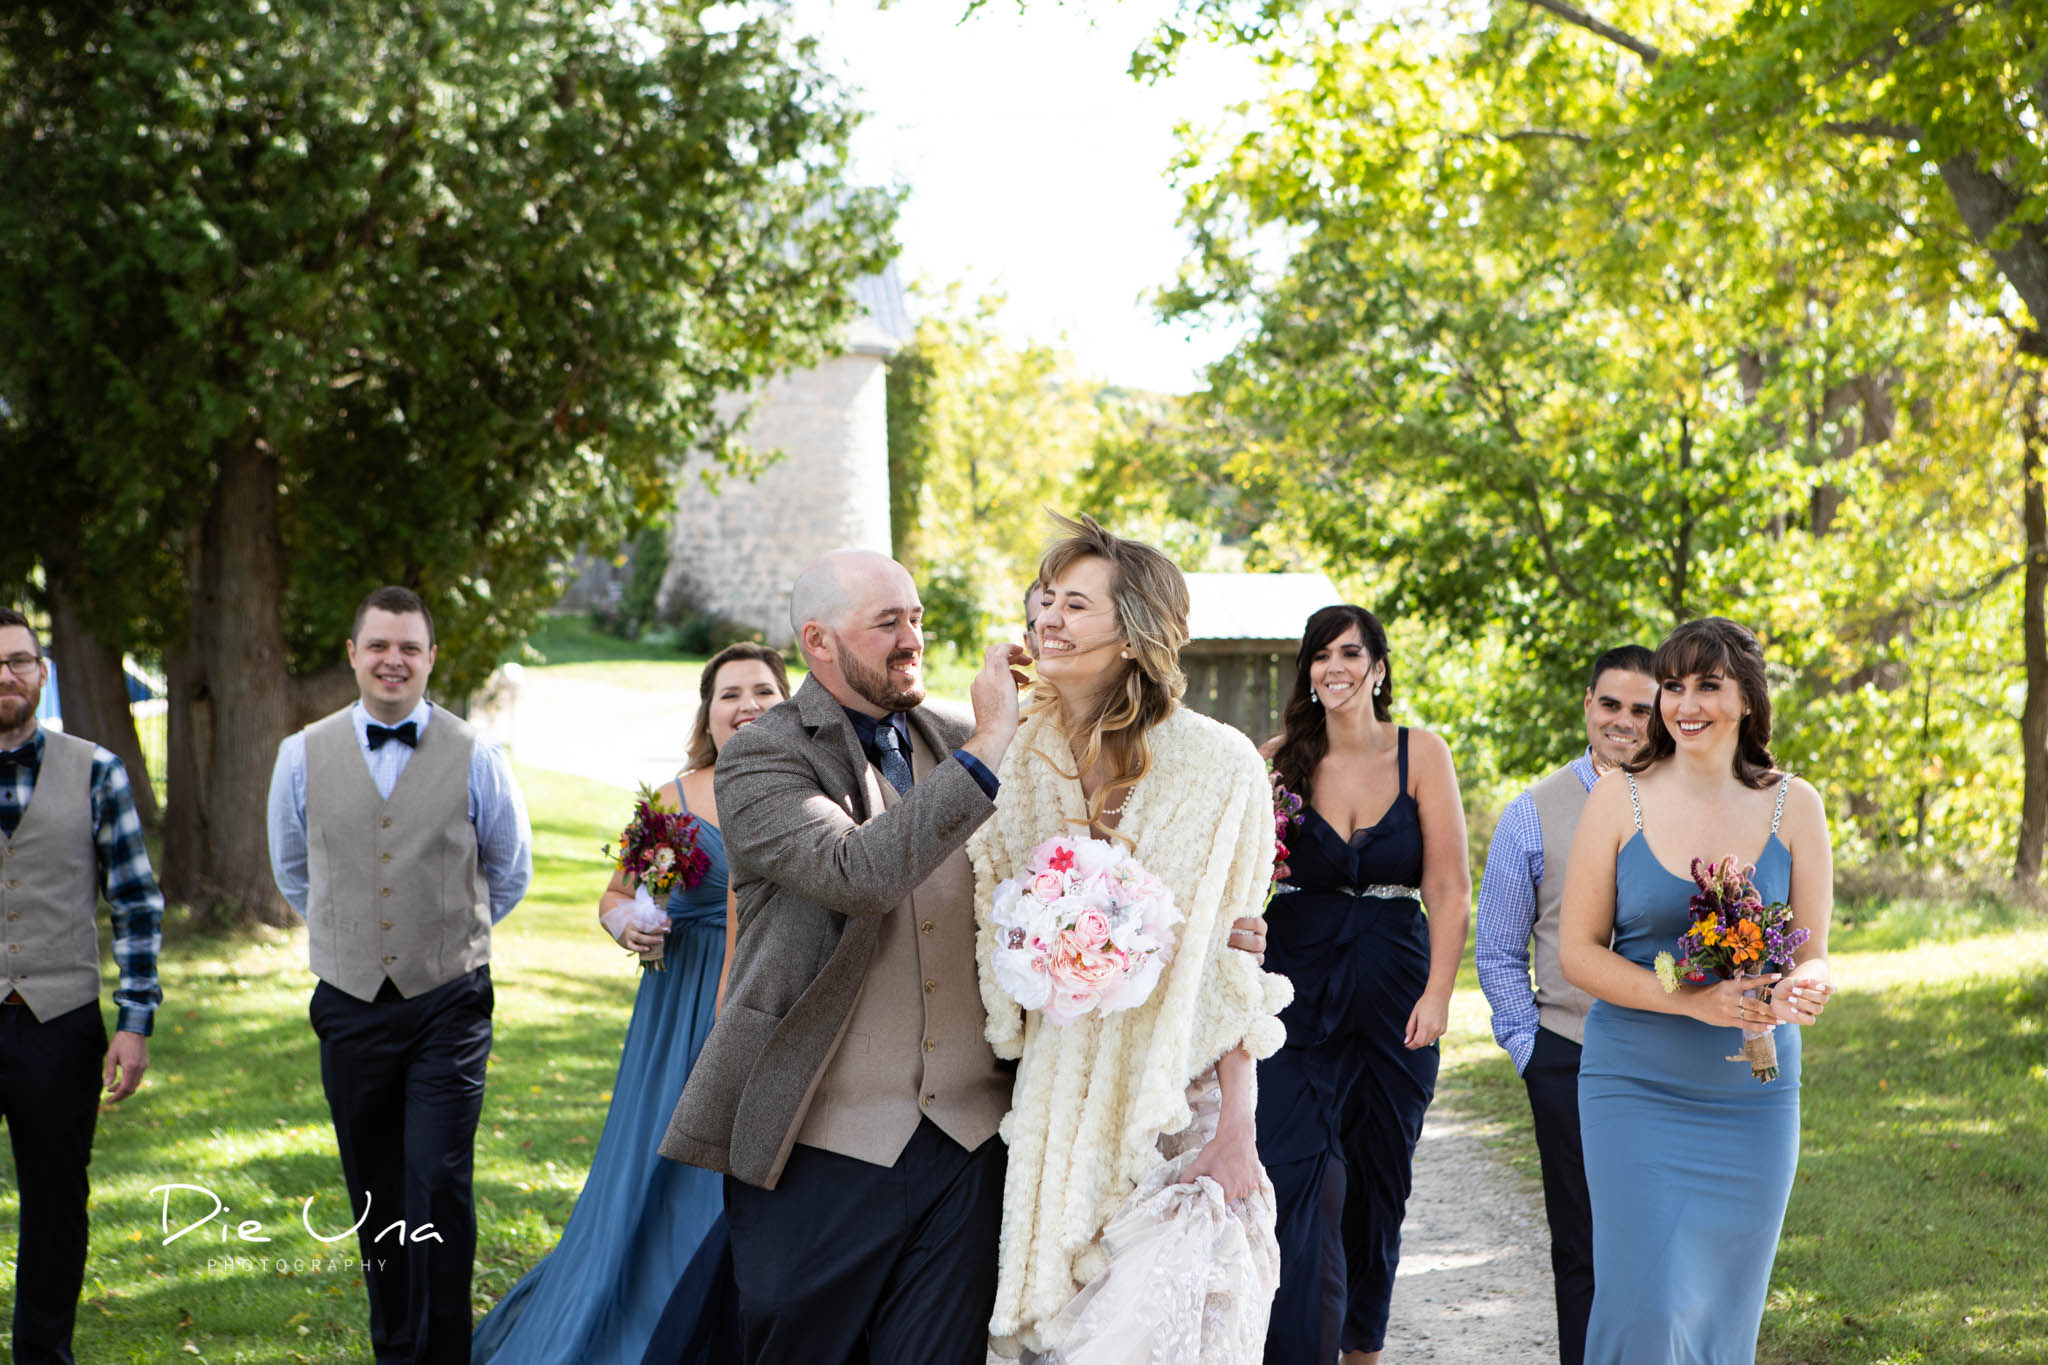 groom fixing brides hair on windy wedding day wedding party in the background walking.jpg